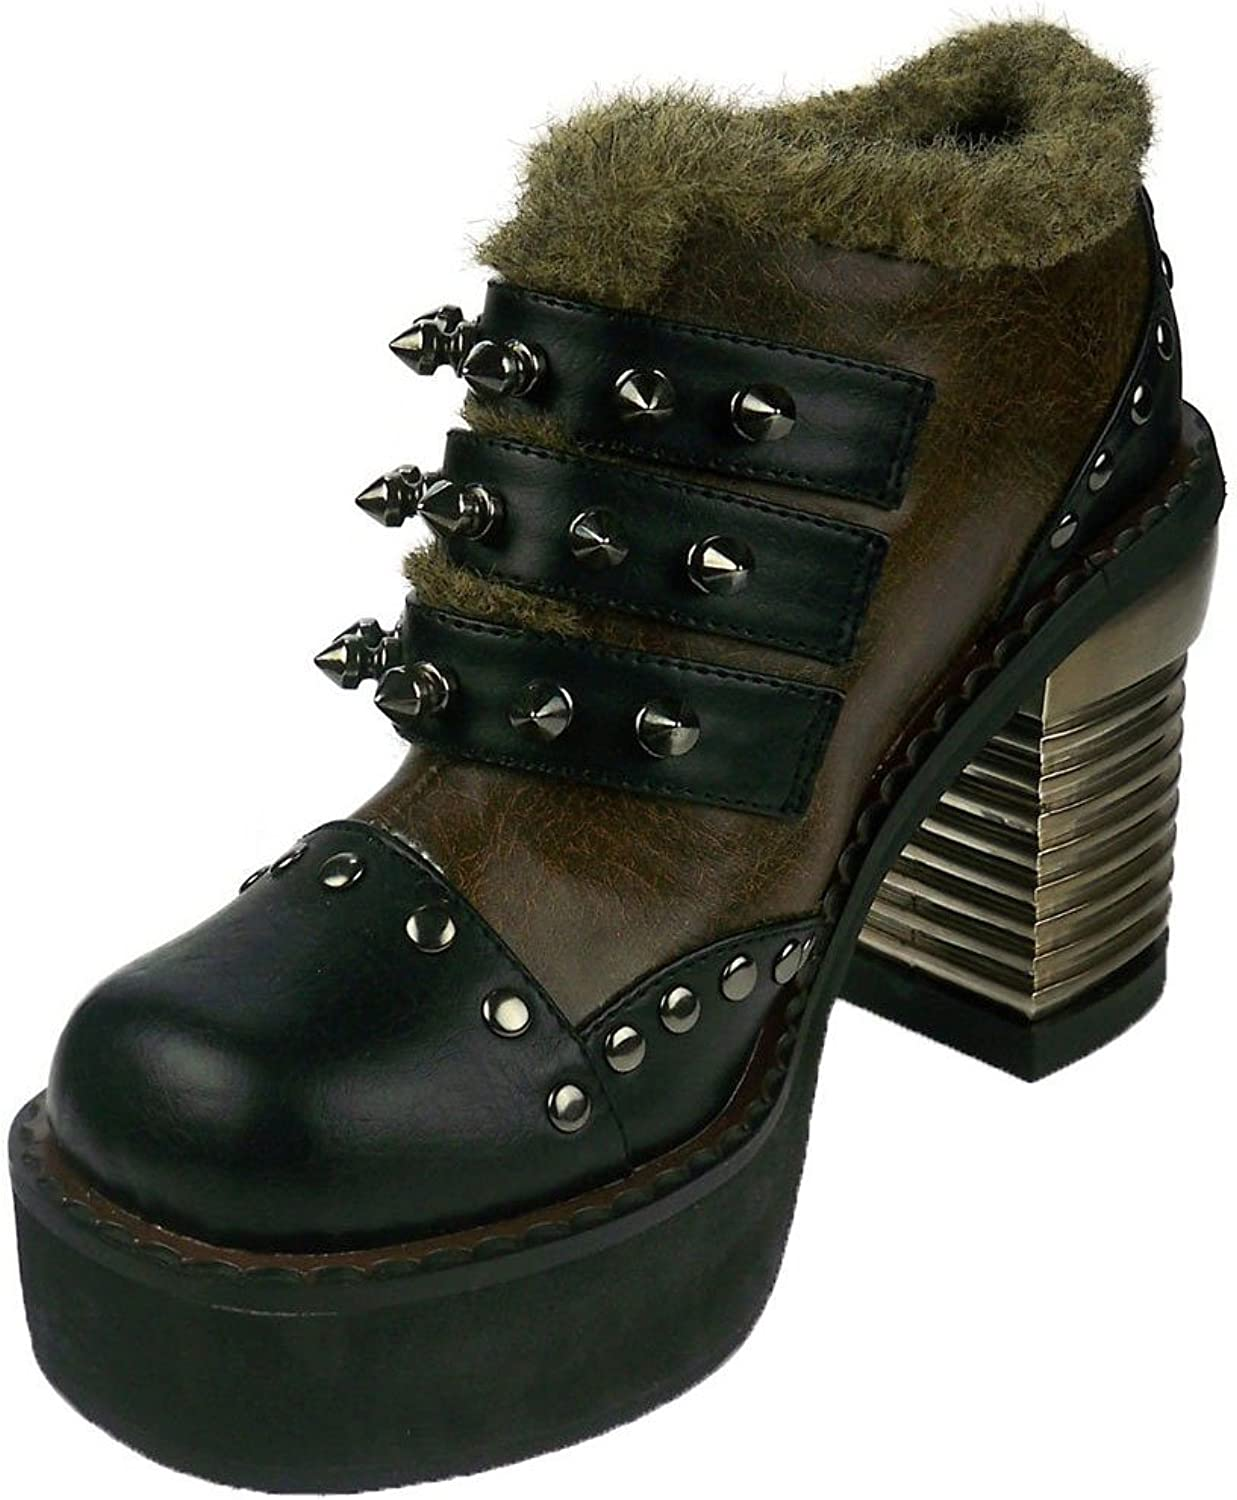 Hades shoes H-Davorin comfortable steampunk bootie. Faux-fur lining